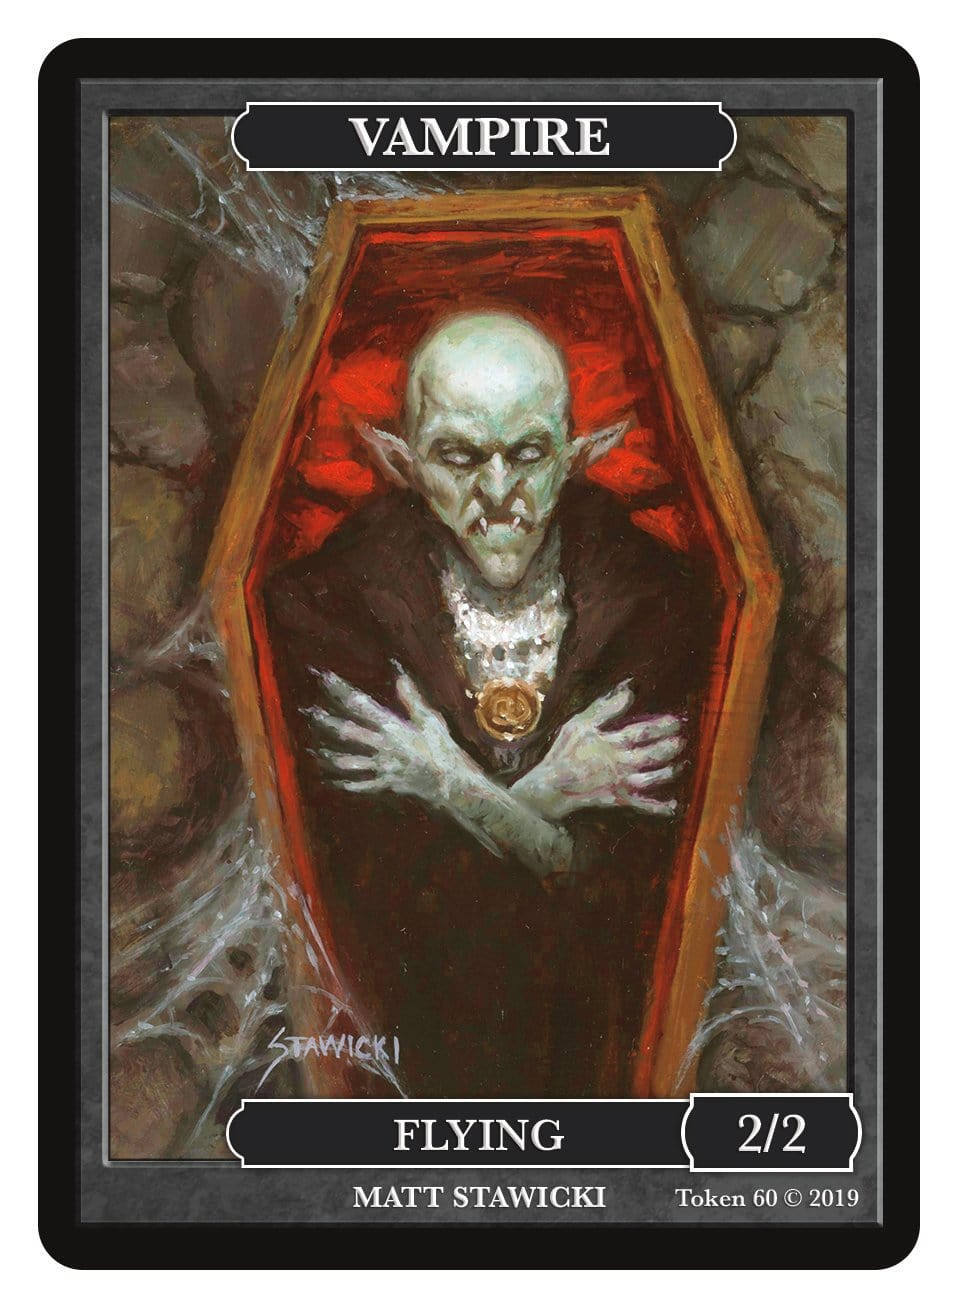 Vampire Token (2/2 - Flying) by Matt Stawicki - Token - Original Magic Art - Accessories for Magic the Gathering and other card games